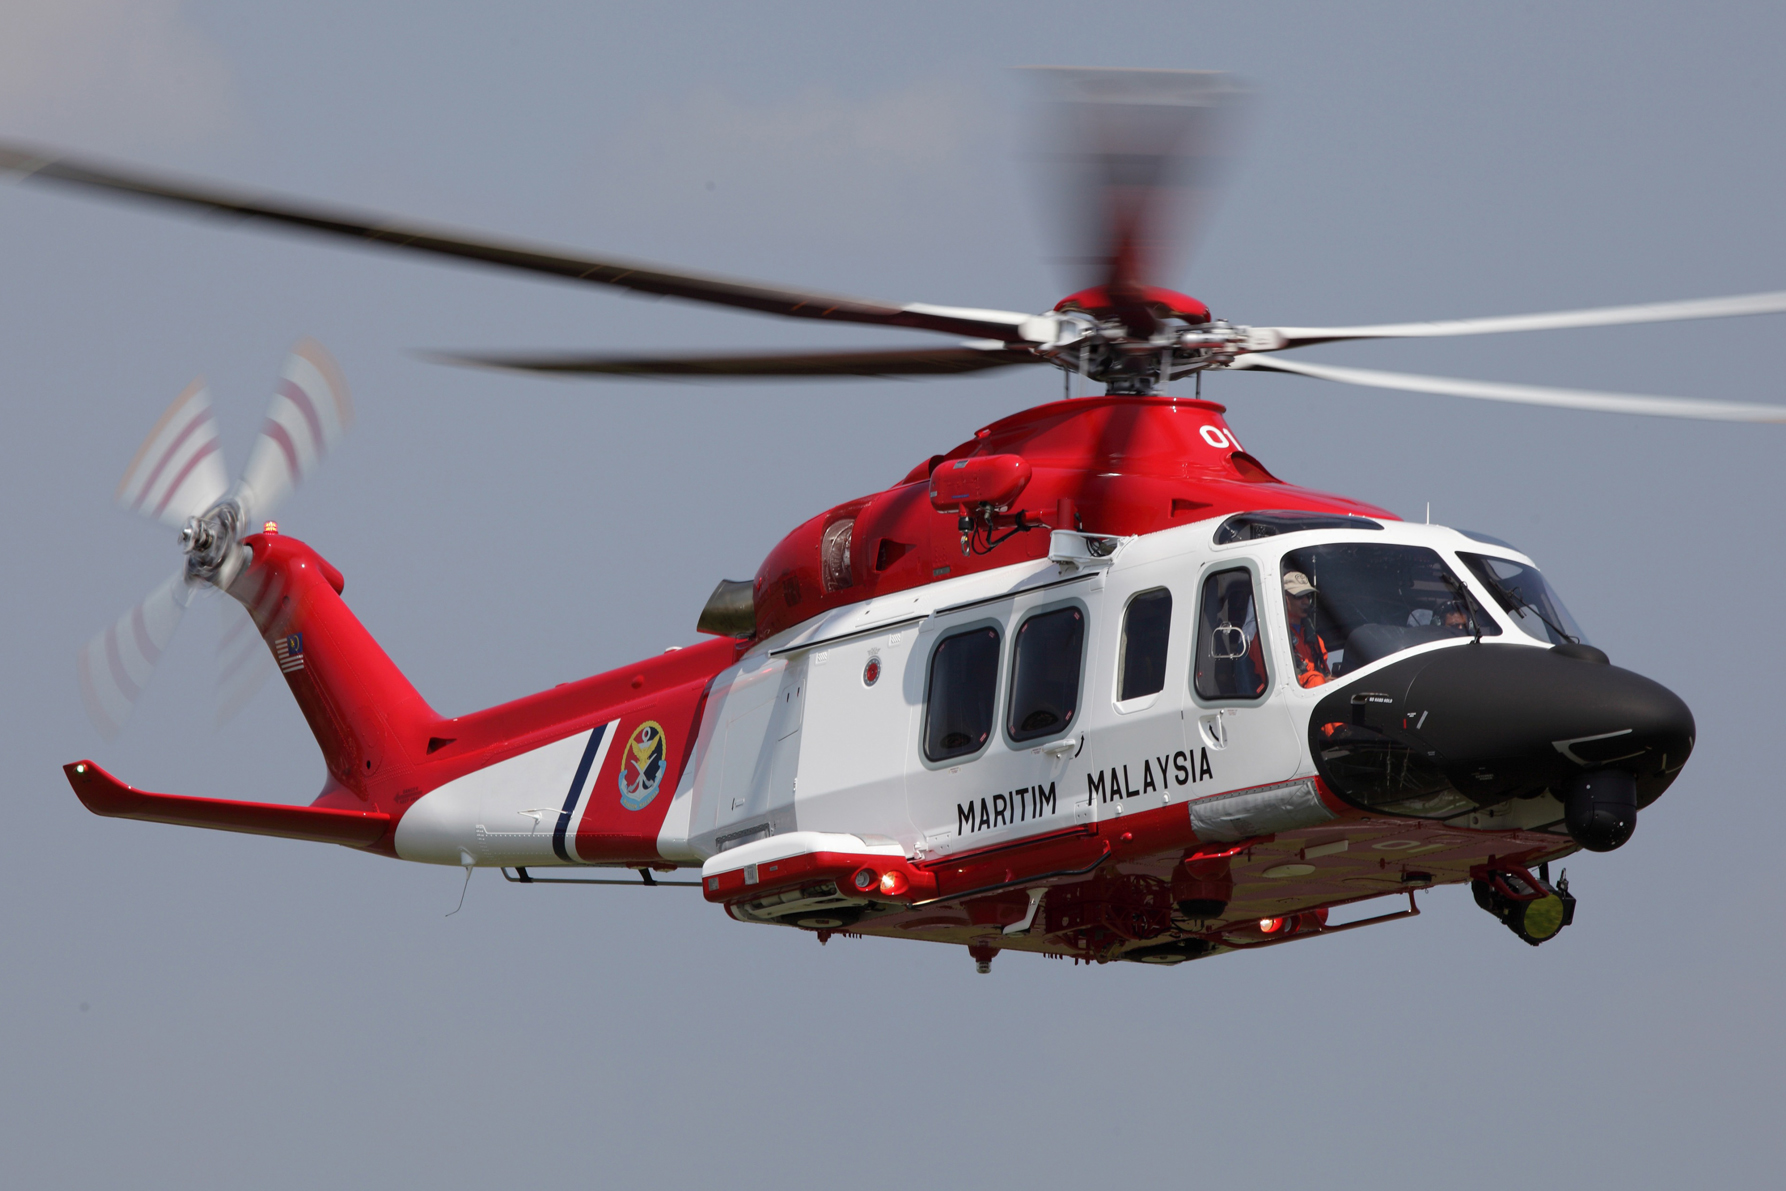 AgustaWestland expands training into Malaysia